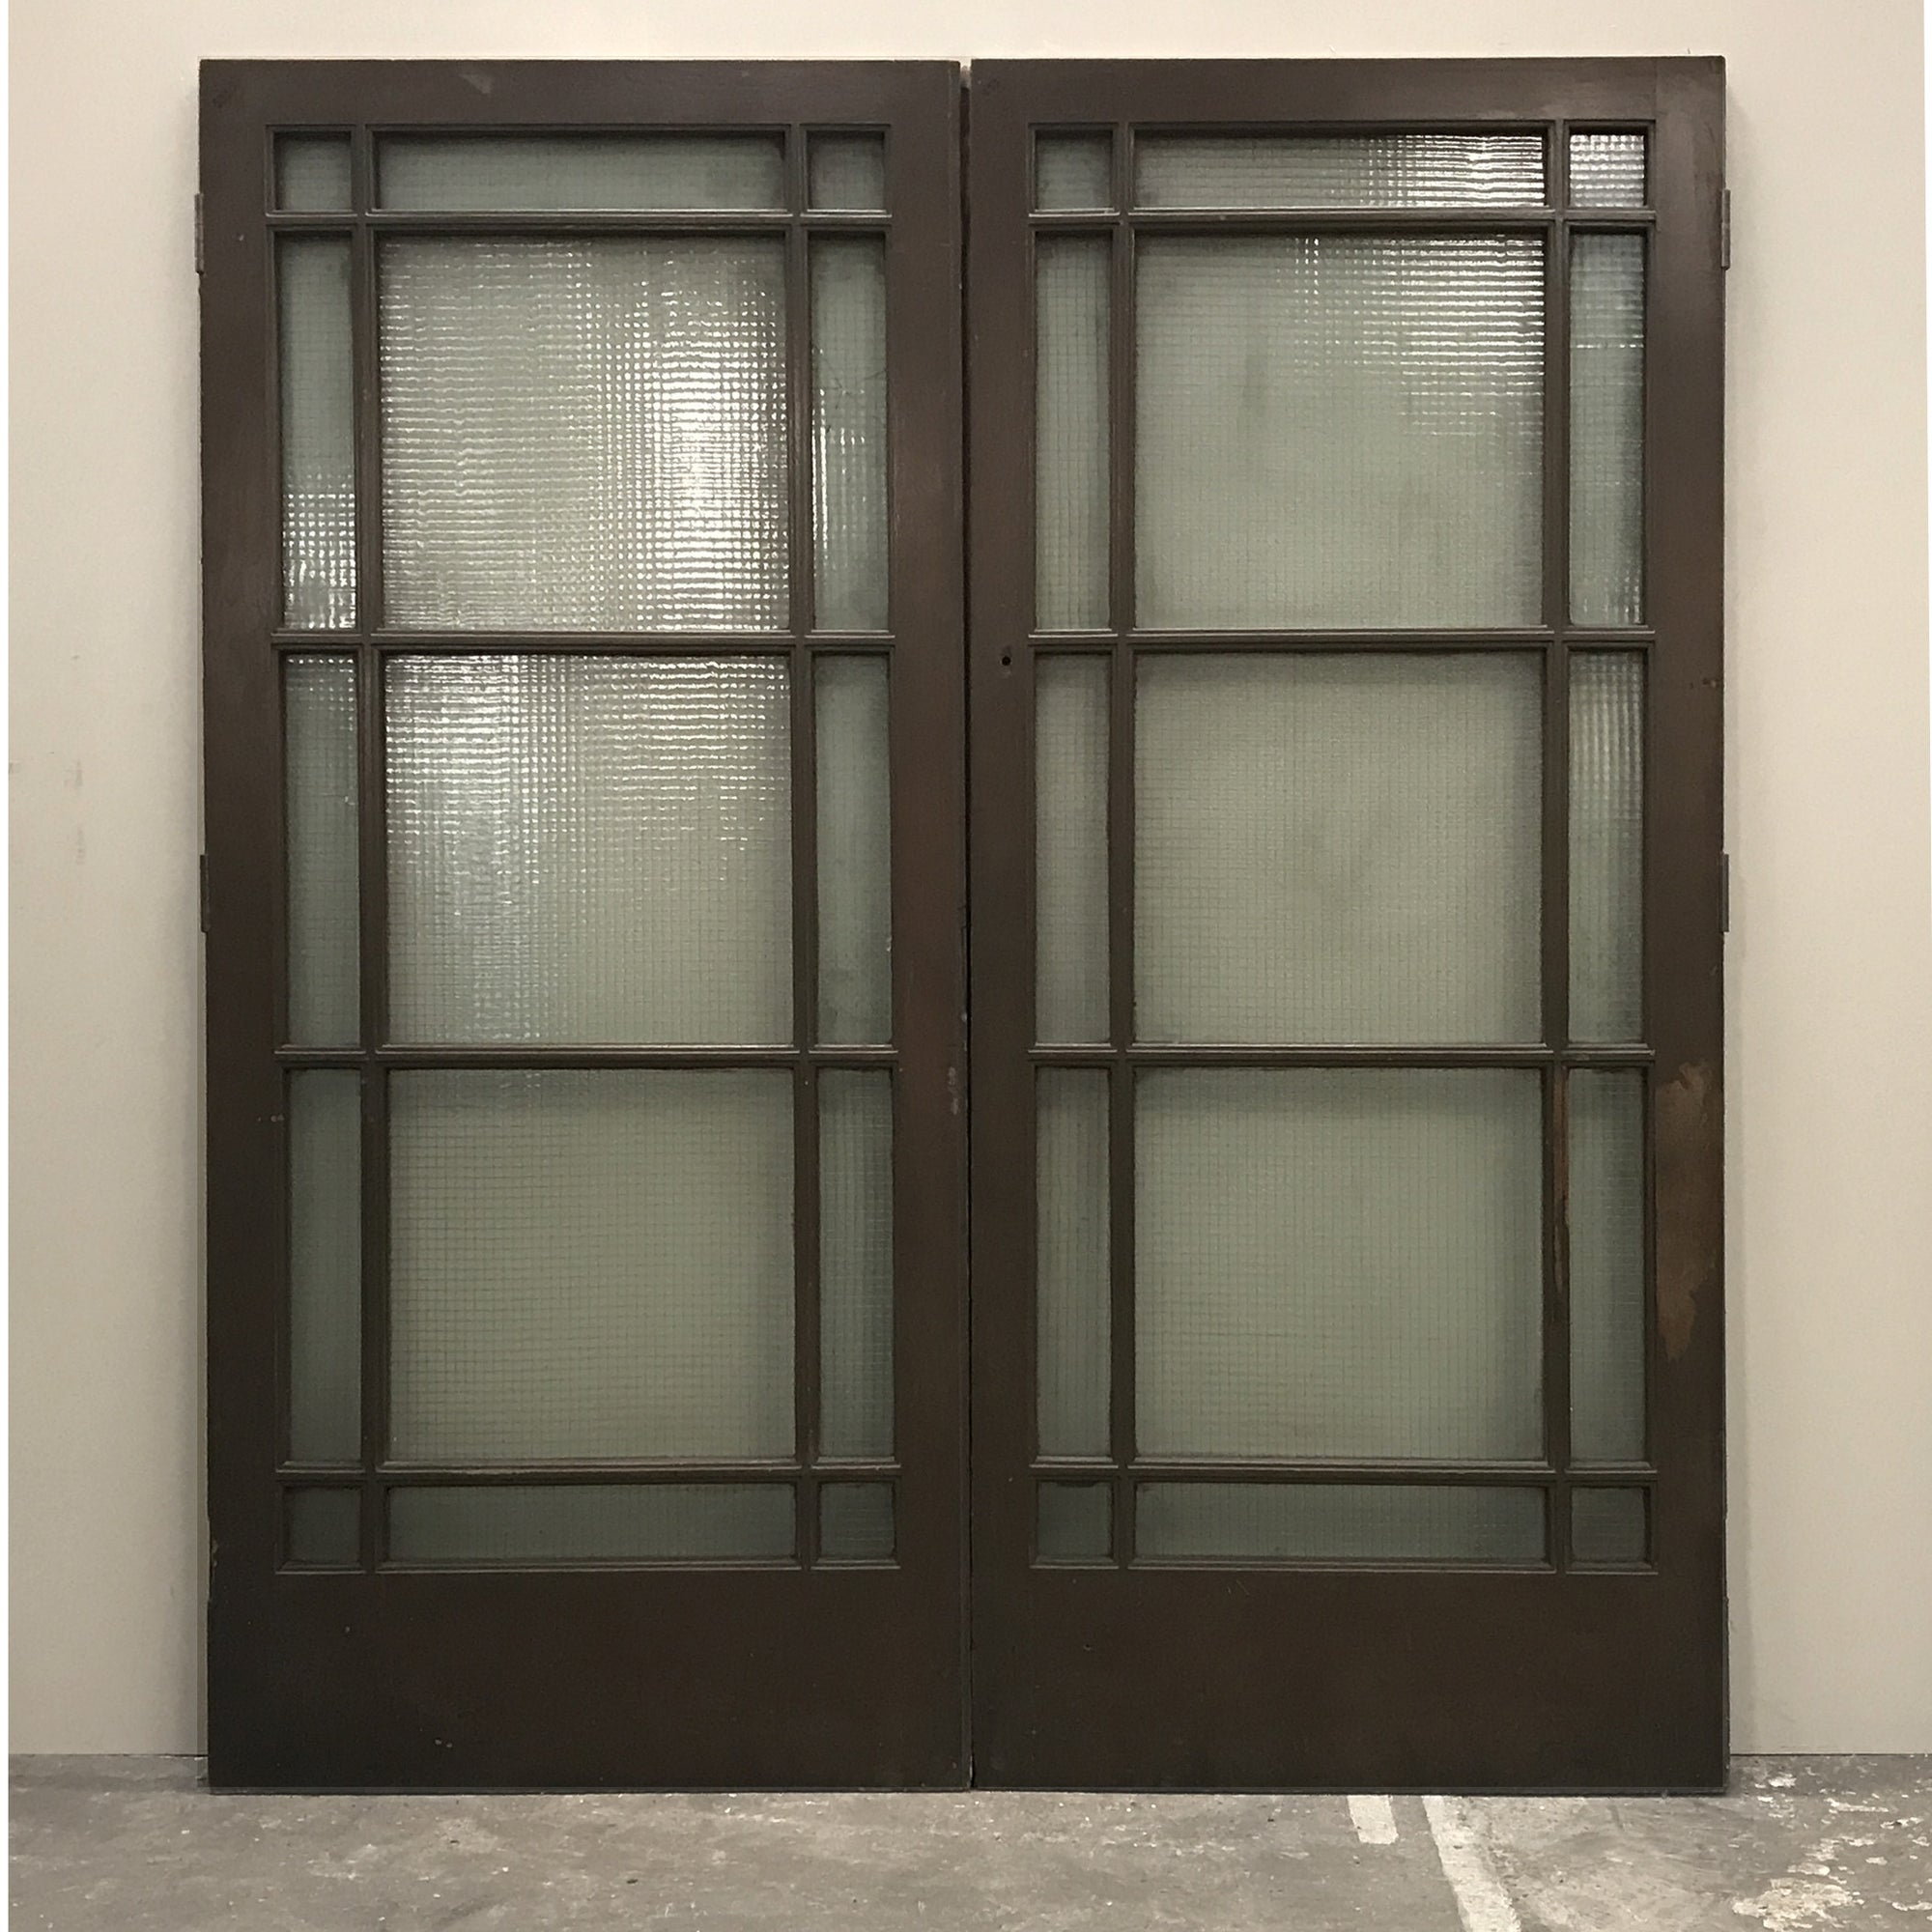 Reclaimed Teak Glazed Double Doors - 202cm x 229cm | The Architectural Forum